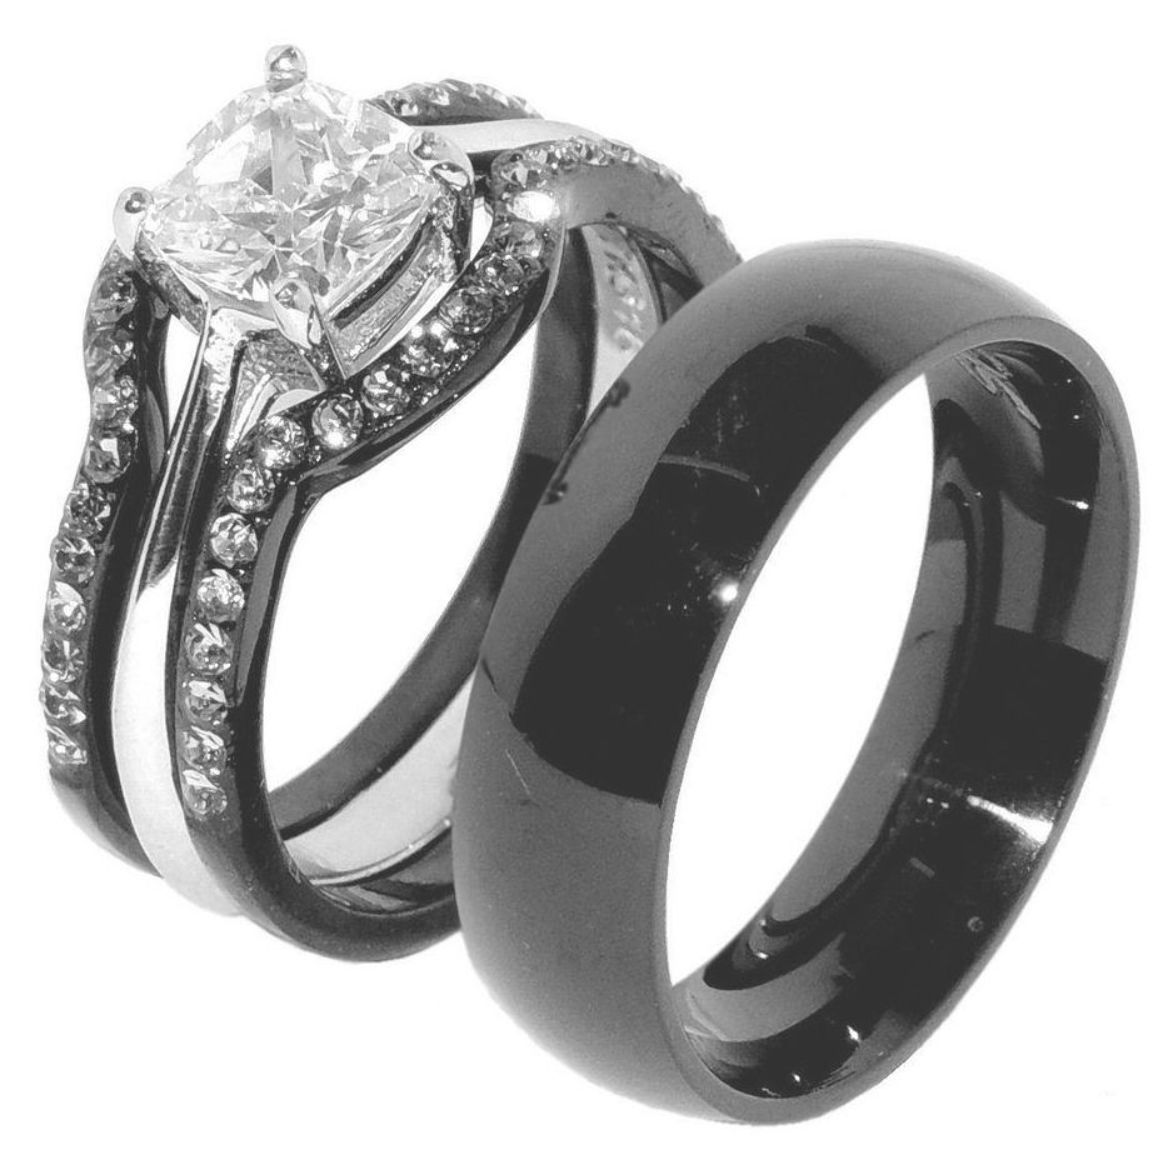 This Beautiful 4pcs His And Hers Black Ion Plated Stainless Steel Wedding Set Rings Include Black Wedding Rings Stainless Steel Wedding Ring Wedding Ring Sets